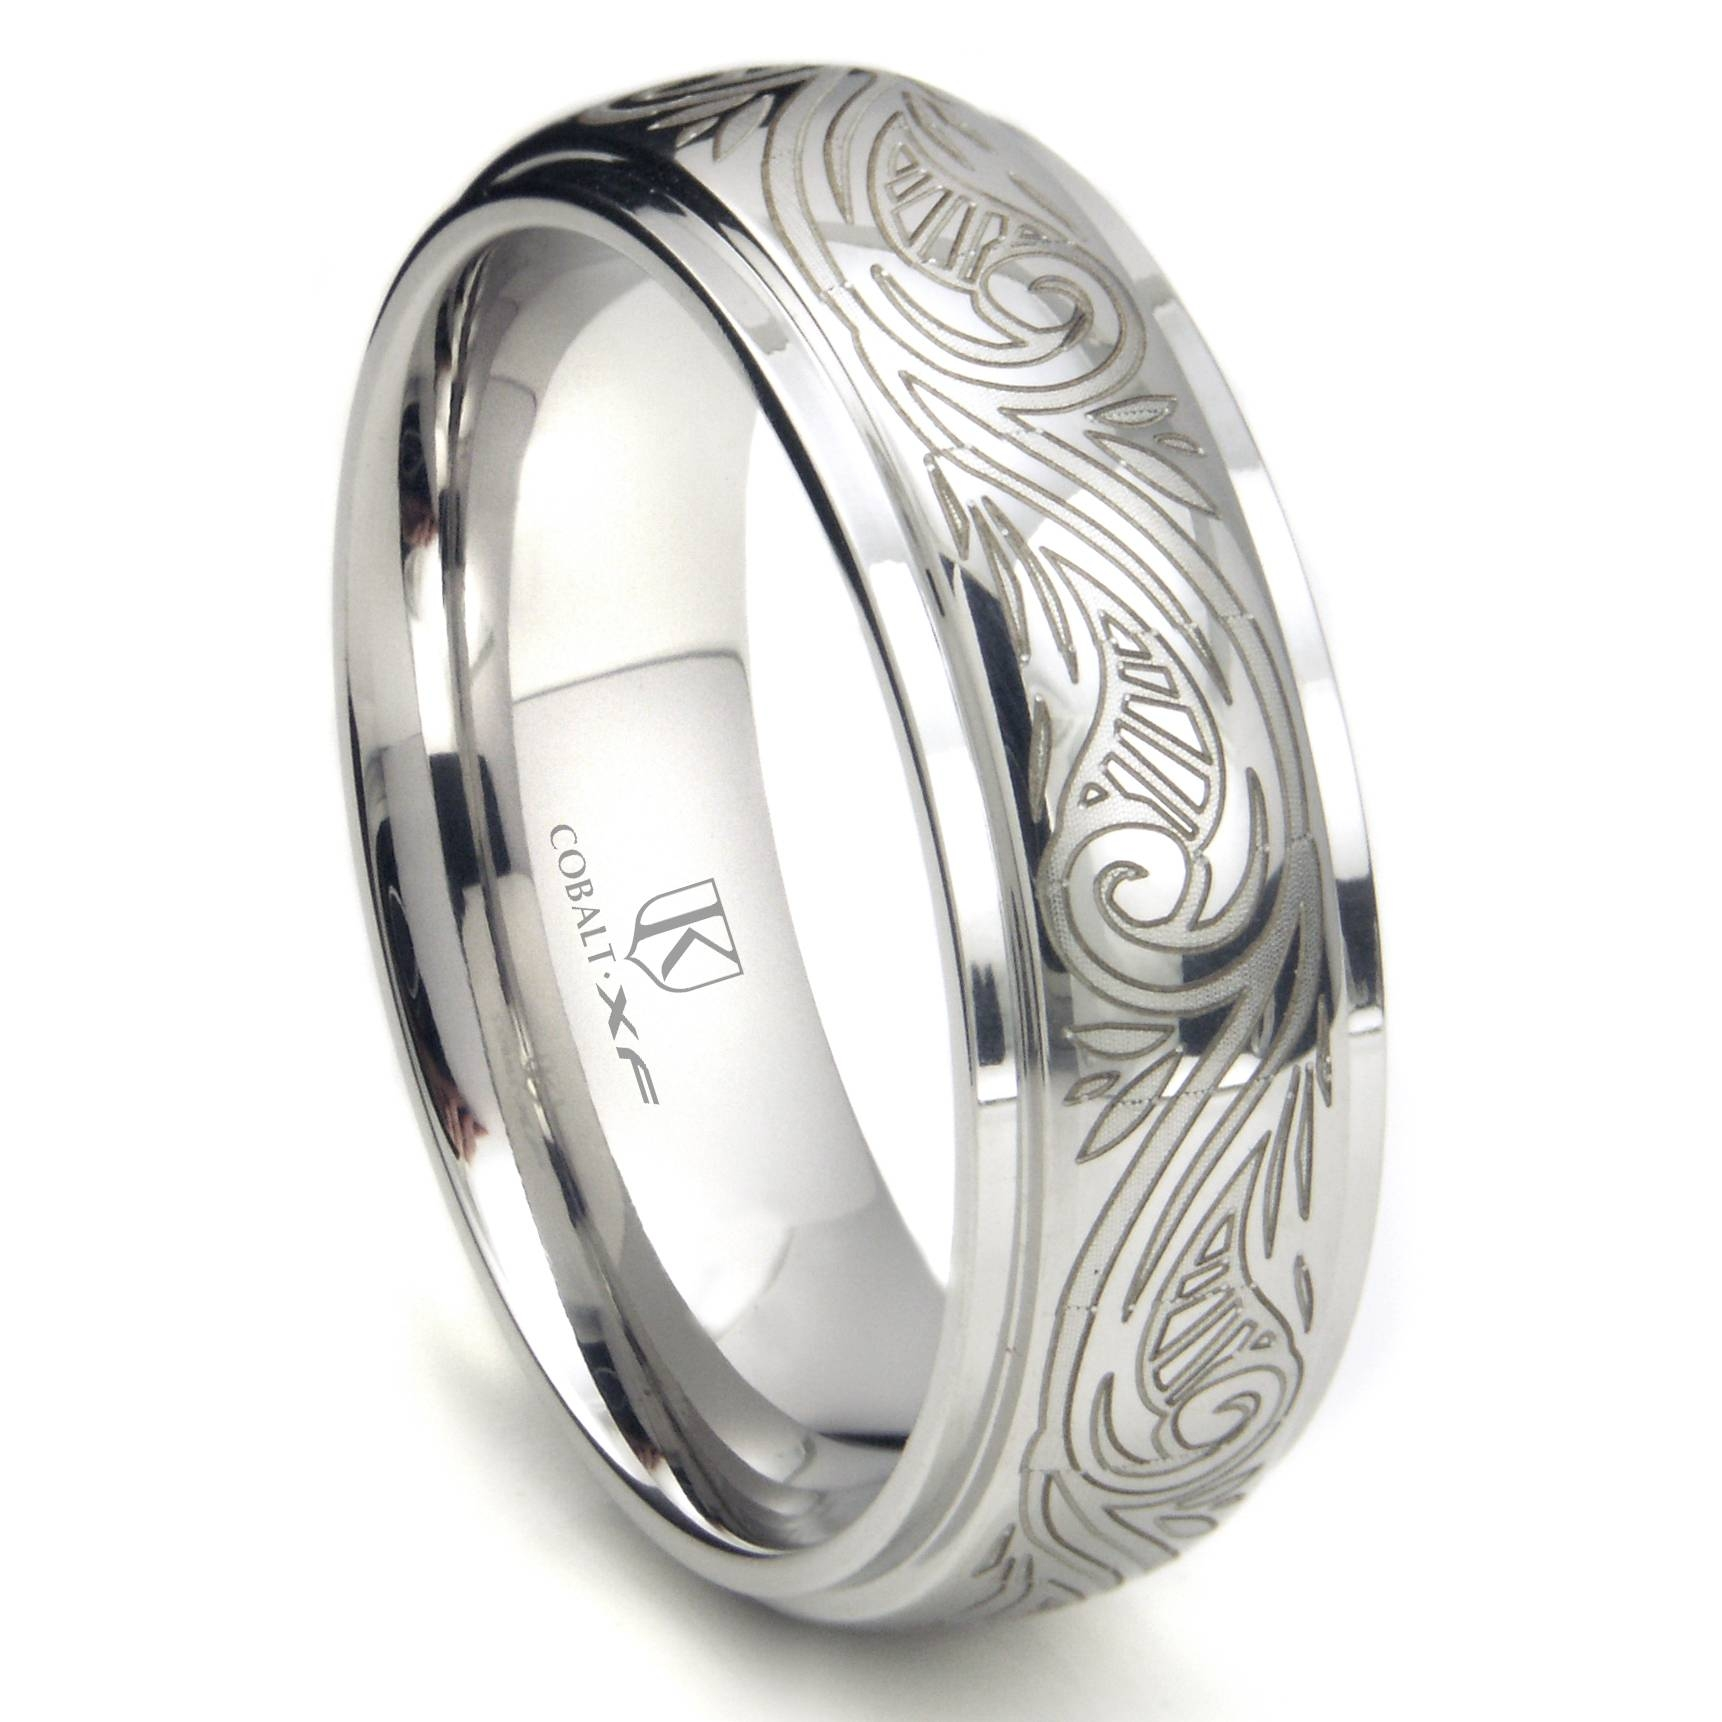 Cobalt Xf Chrome 8Mm Laser Engraved Paisley Motif Dome Wedding With Cobalt Mens Wedding Rings (View 7 of 15)